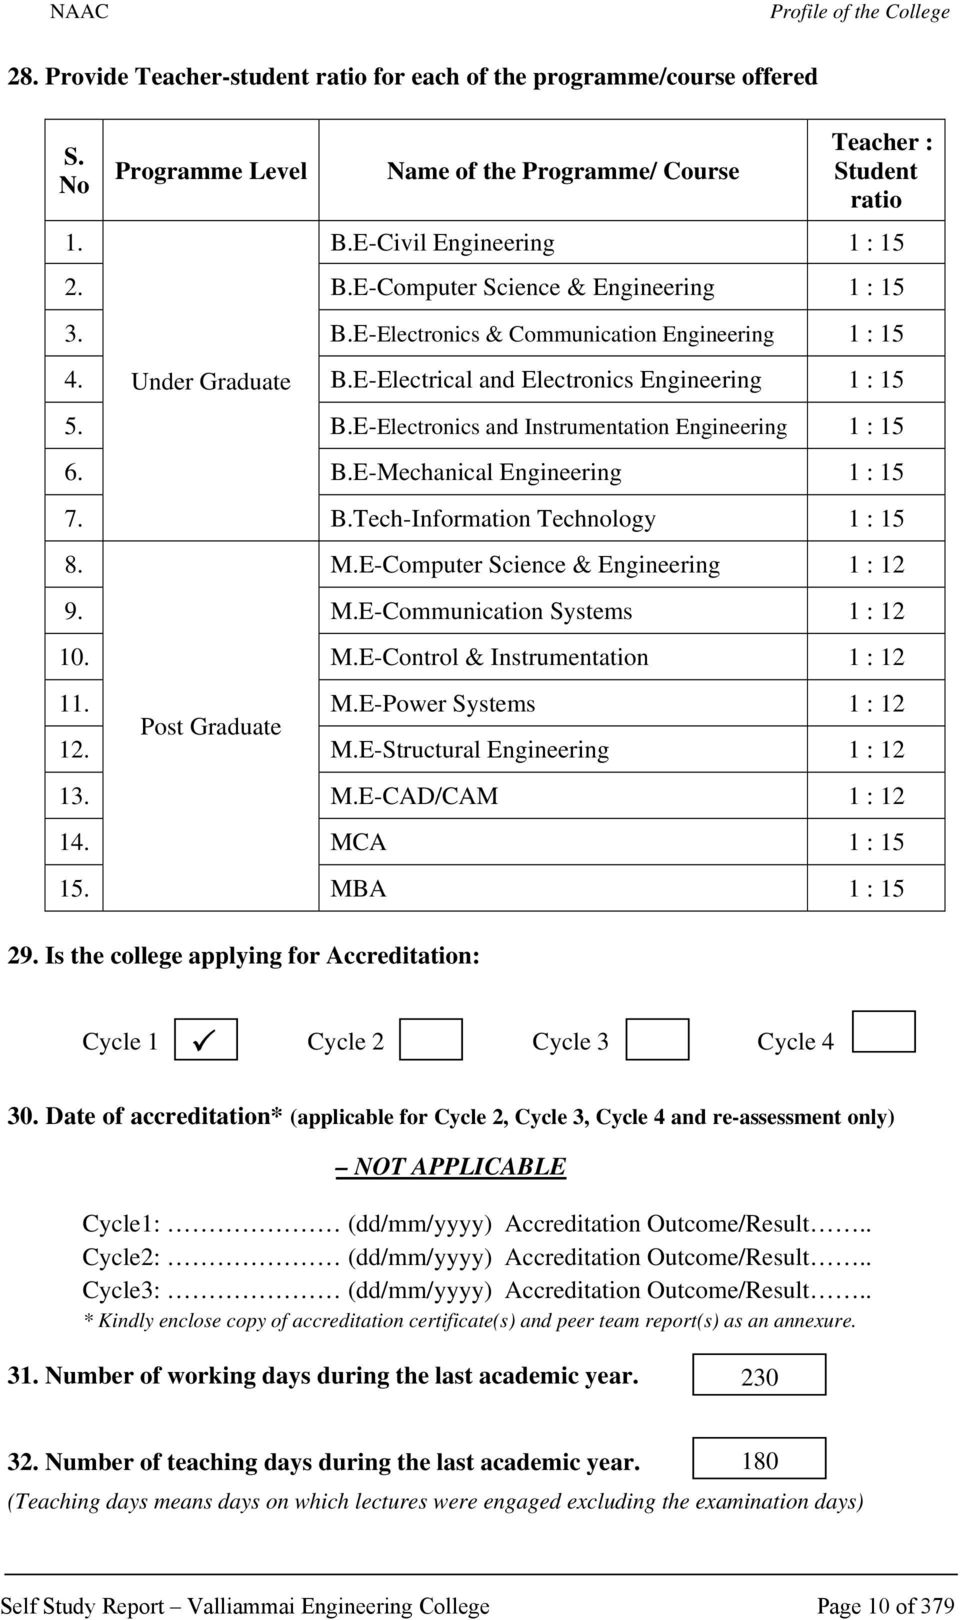 National Assessment And Accreditation Council Bangalore India Pdf 3d Plant Cell Diagram 8 Grade Image Galleries Imagekbcom Be Mechanical Engineering 1 15 7 Btech Information Technology